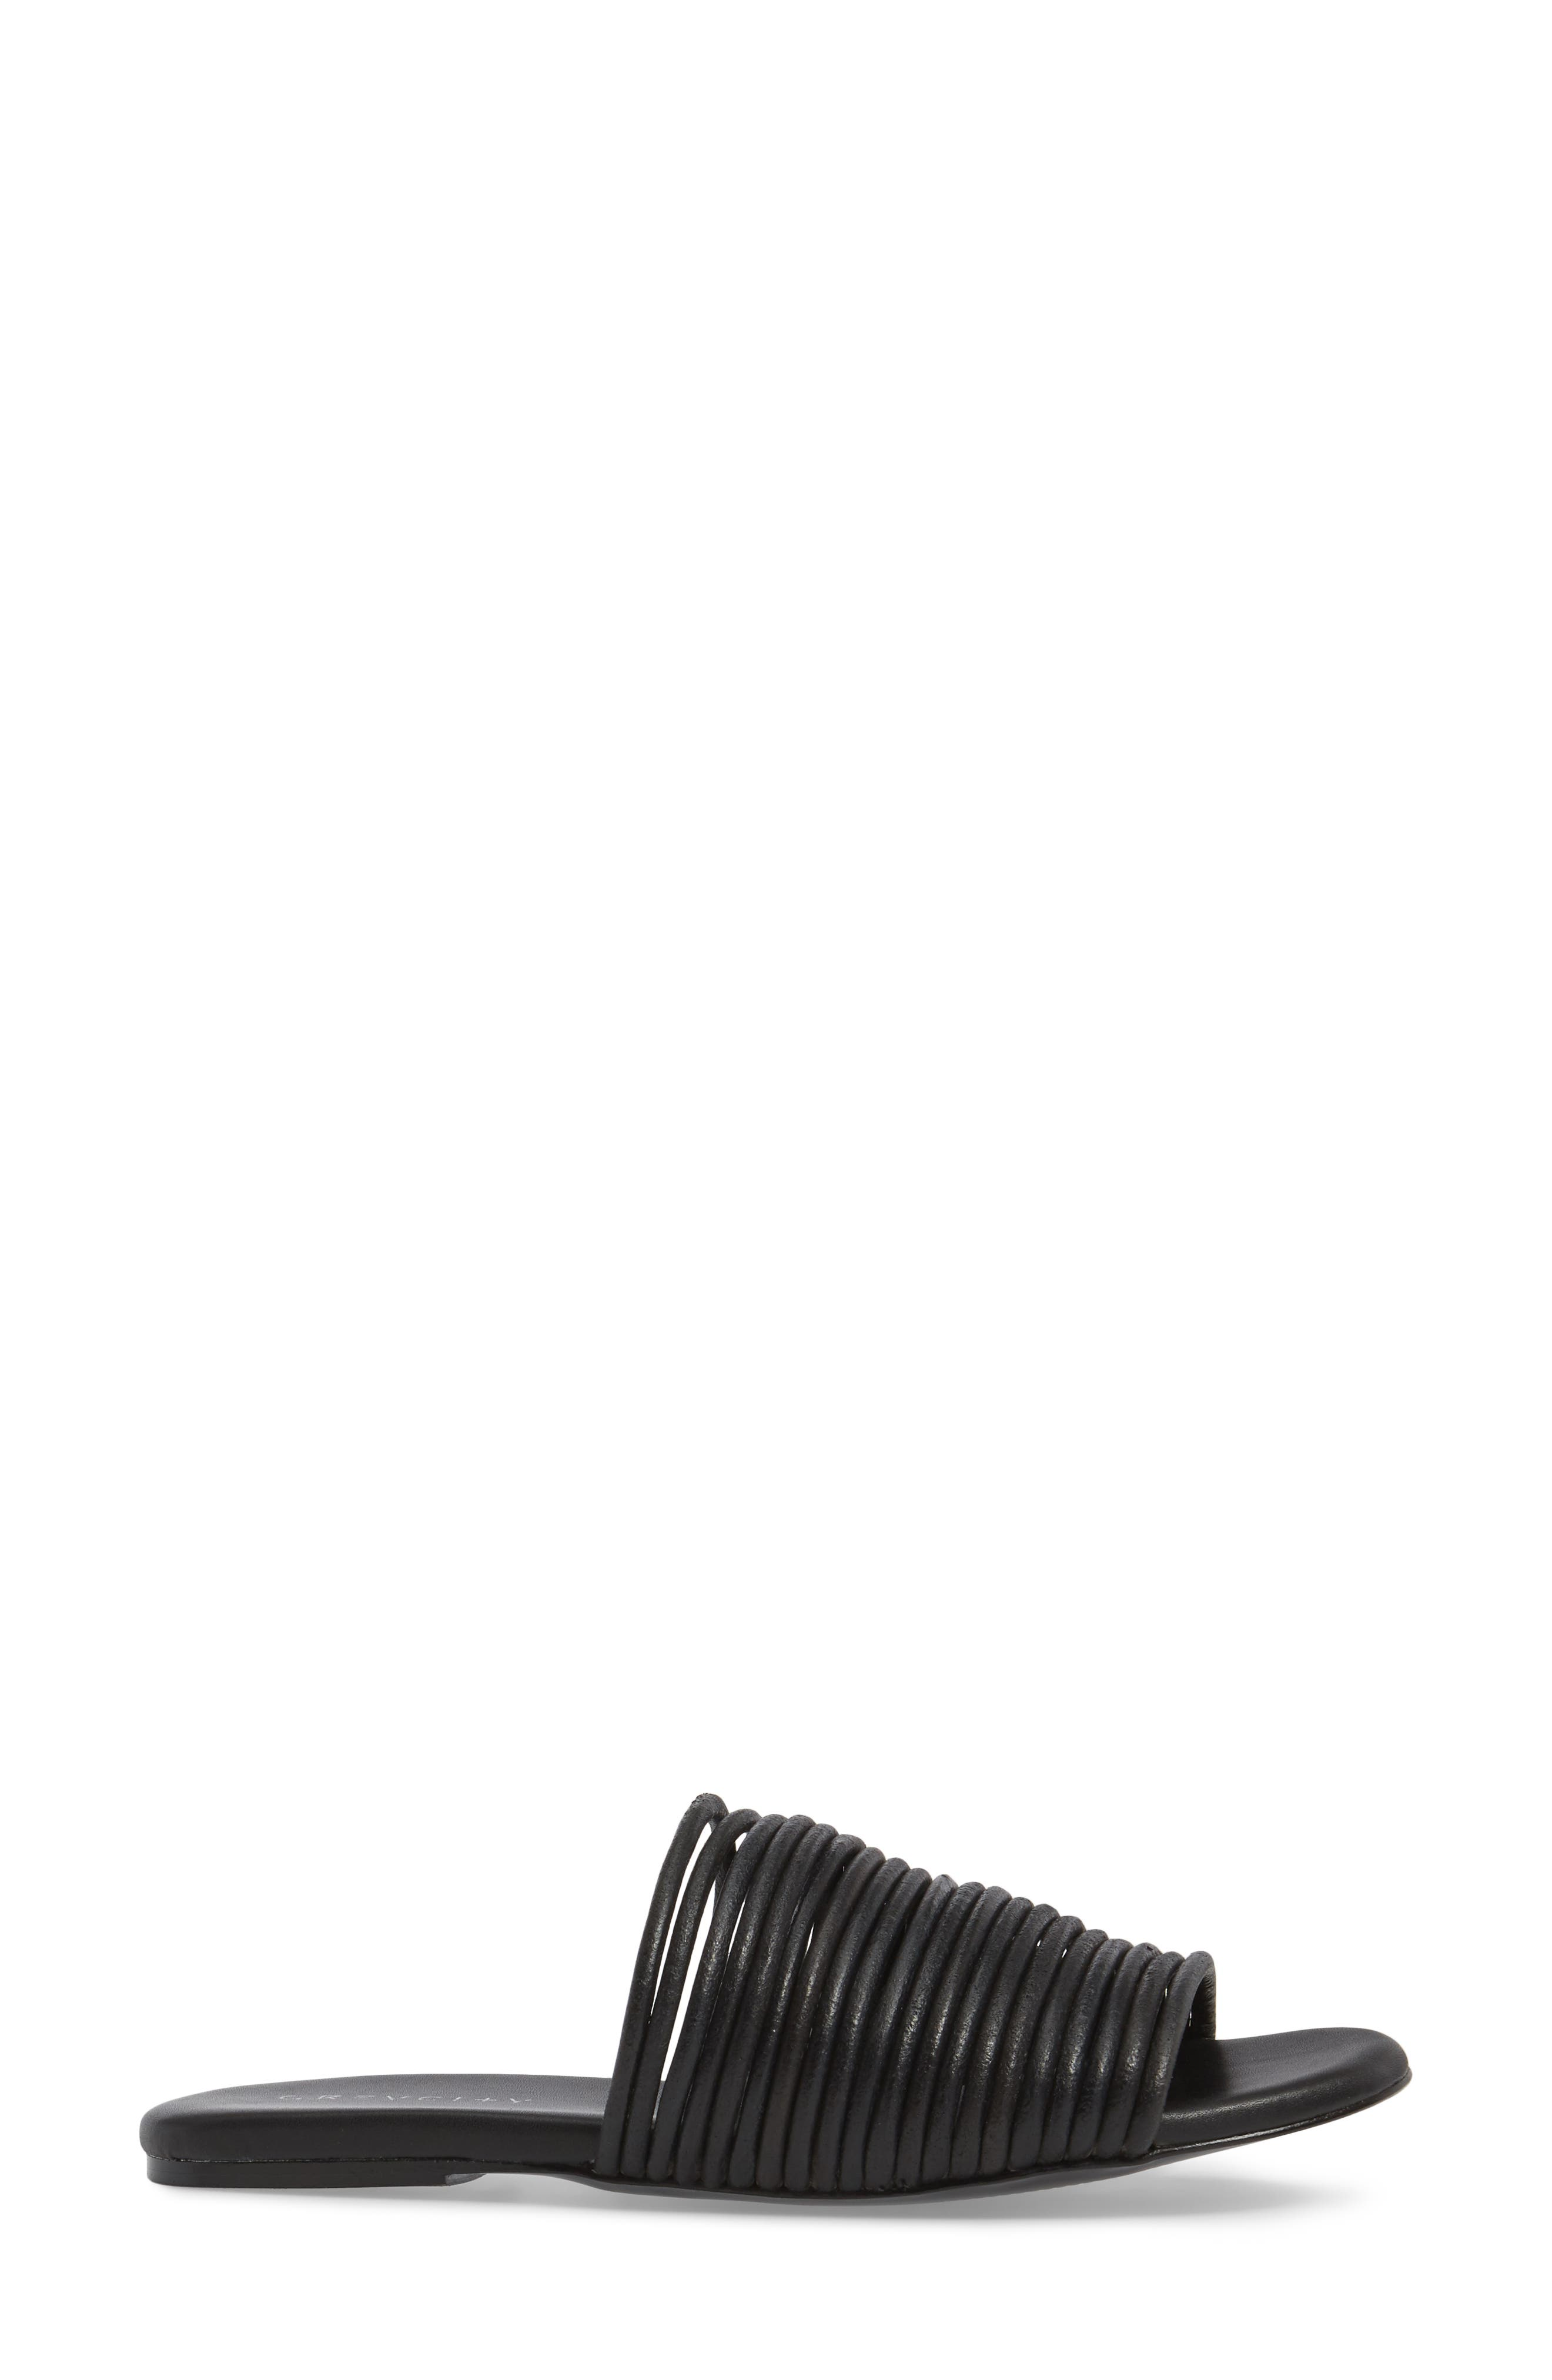 Nikki Corded Slide Sandal,                             Alternate thumbnail 3, color,                             Black